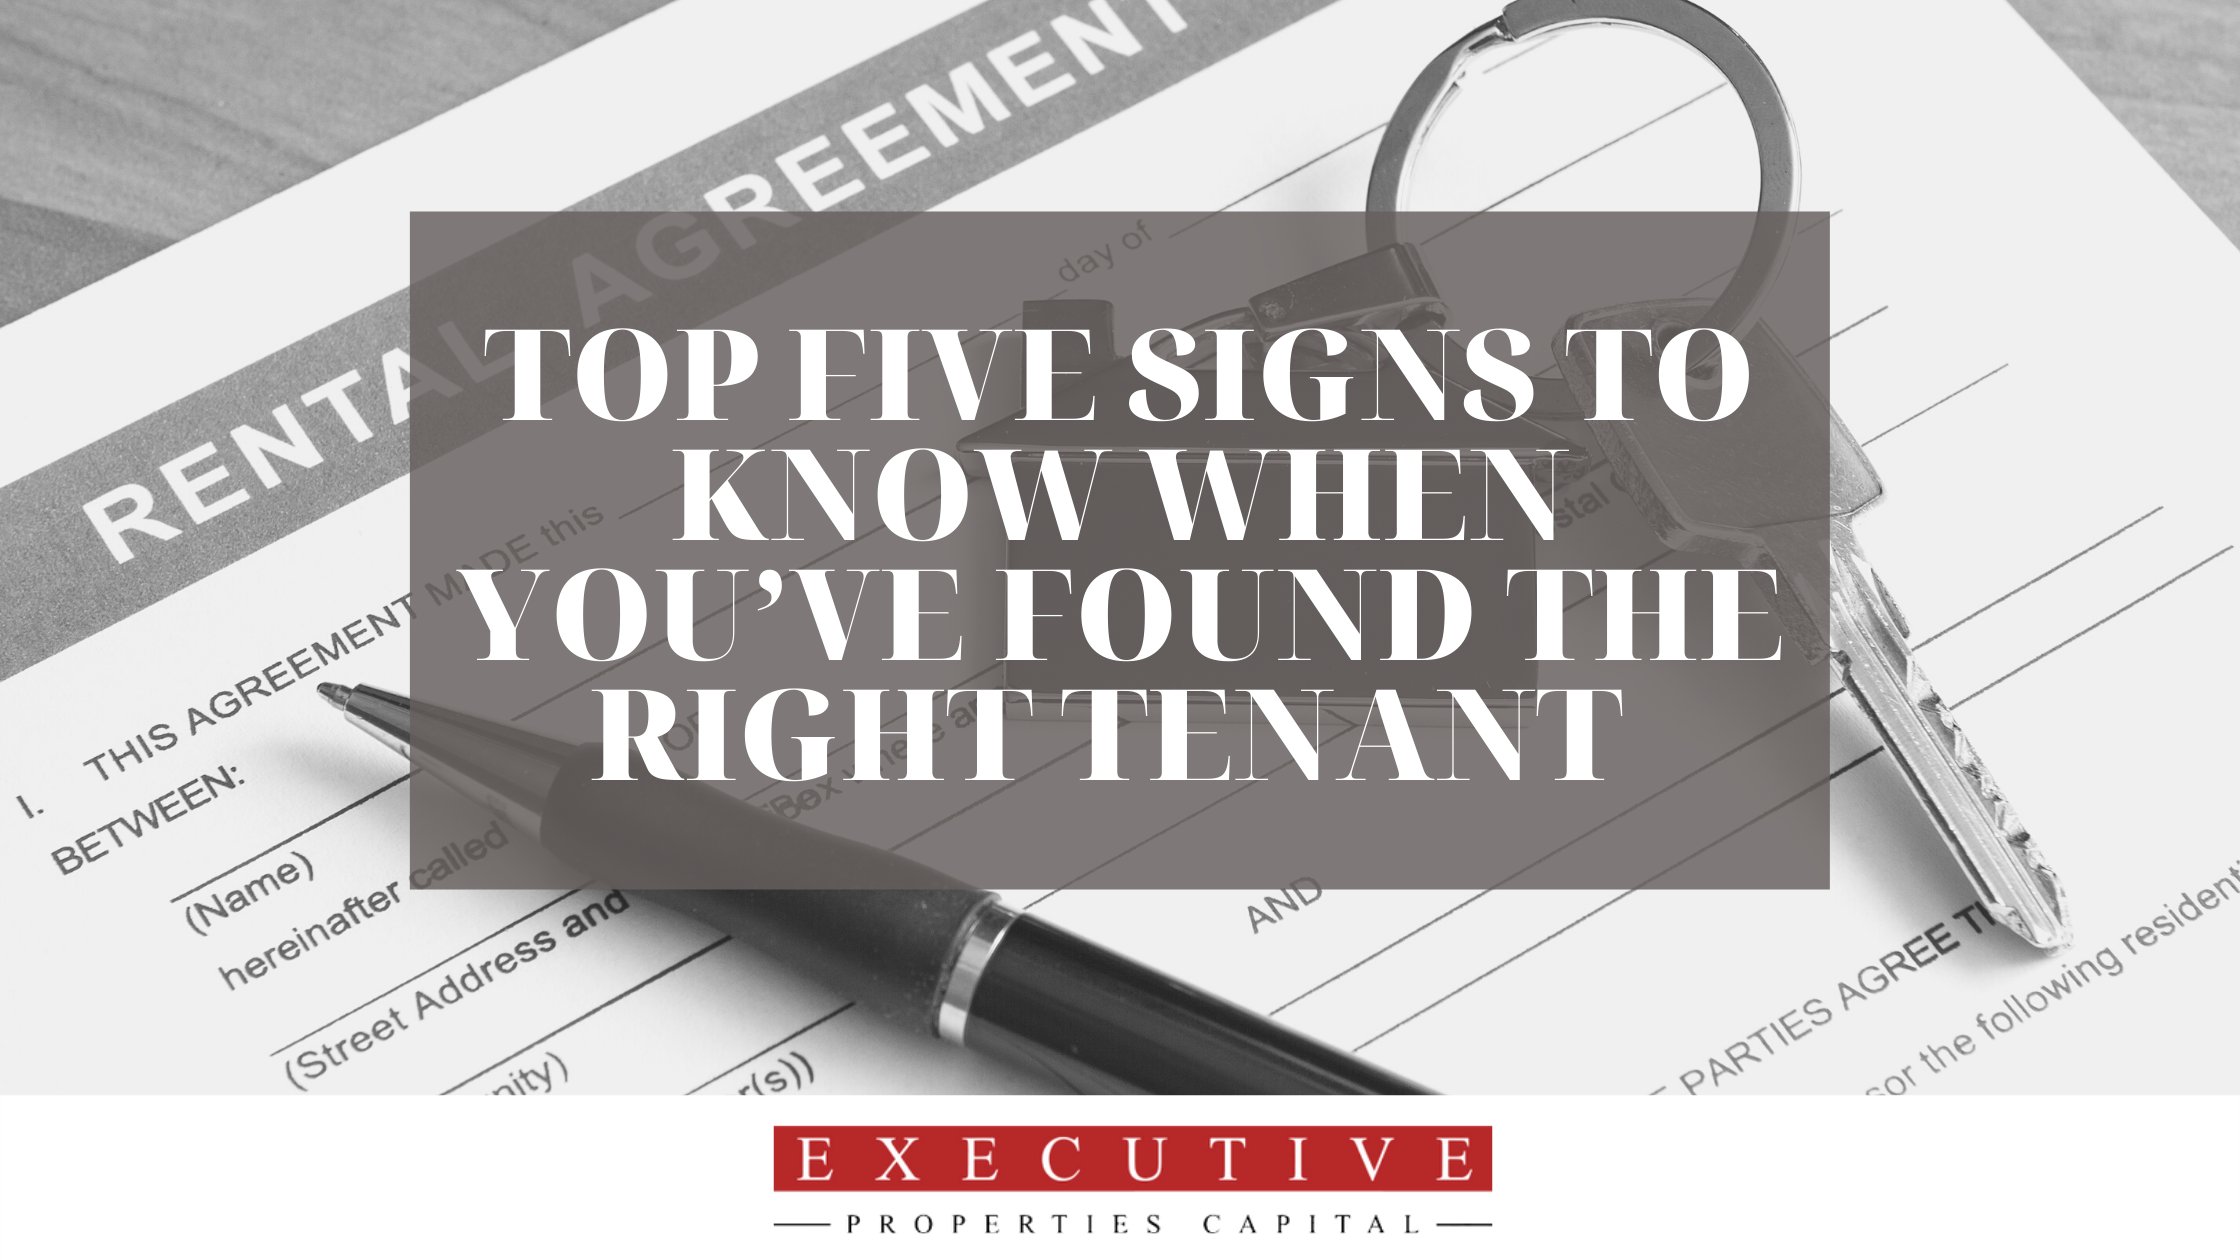 Top Five Signs to Know When You've Found the Right Tenant